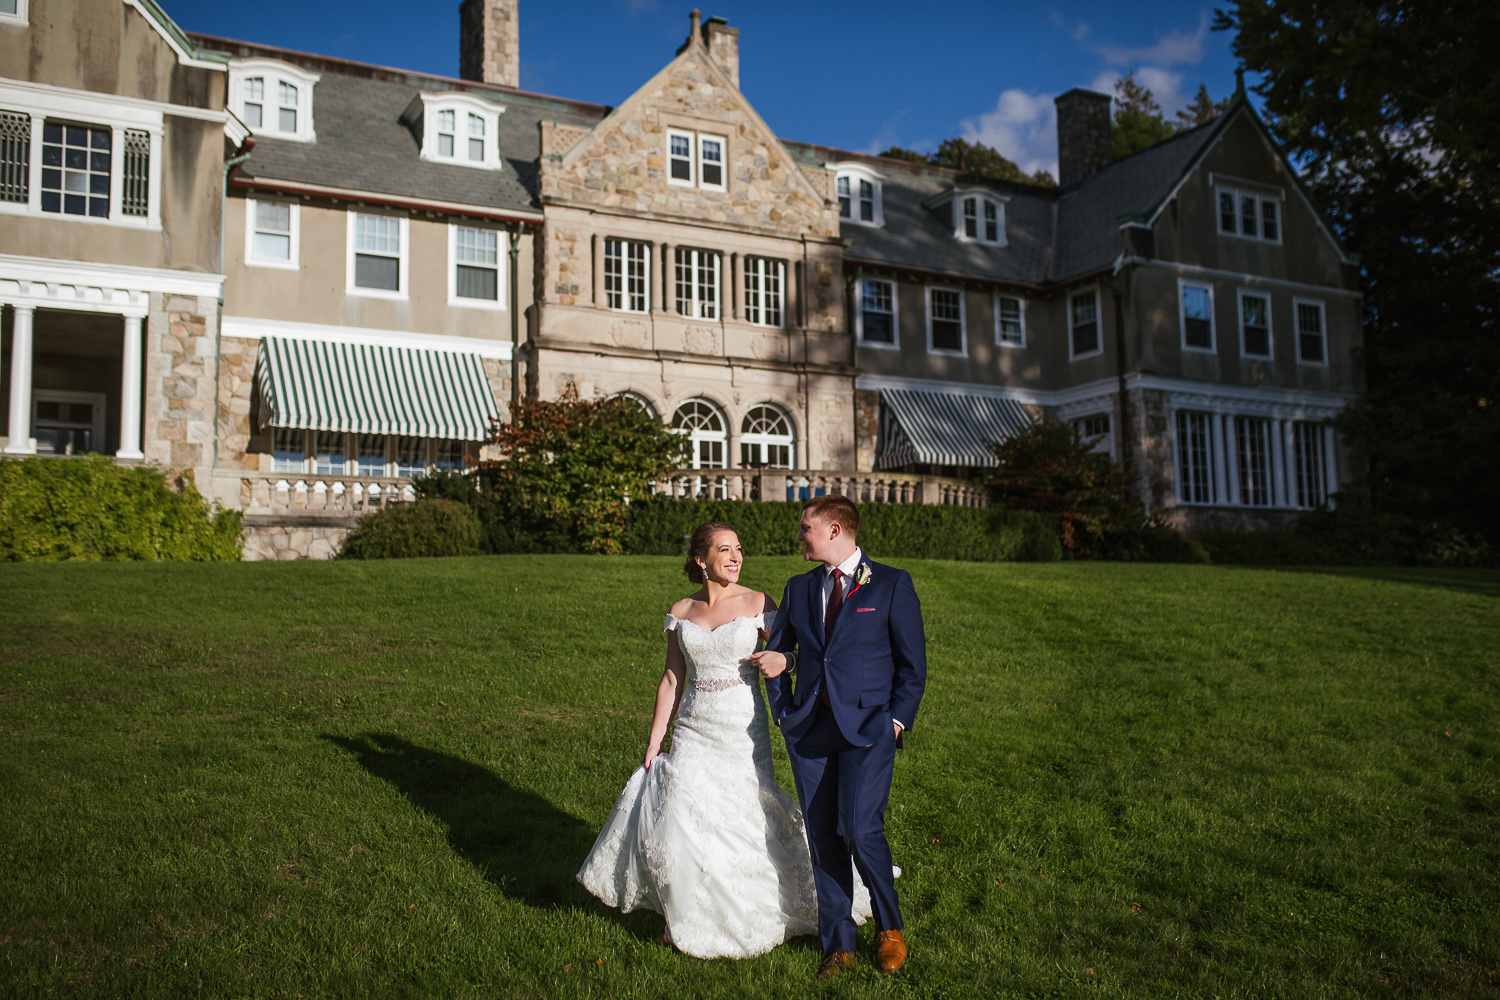 blithewold_mansion_wedding_rhode_island_photographer-51.jpg